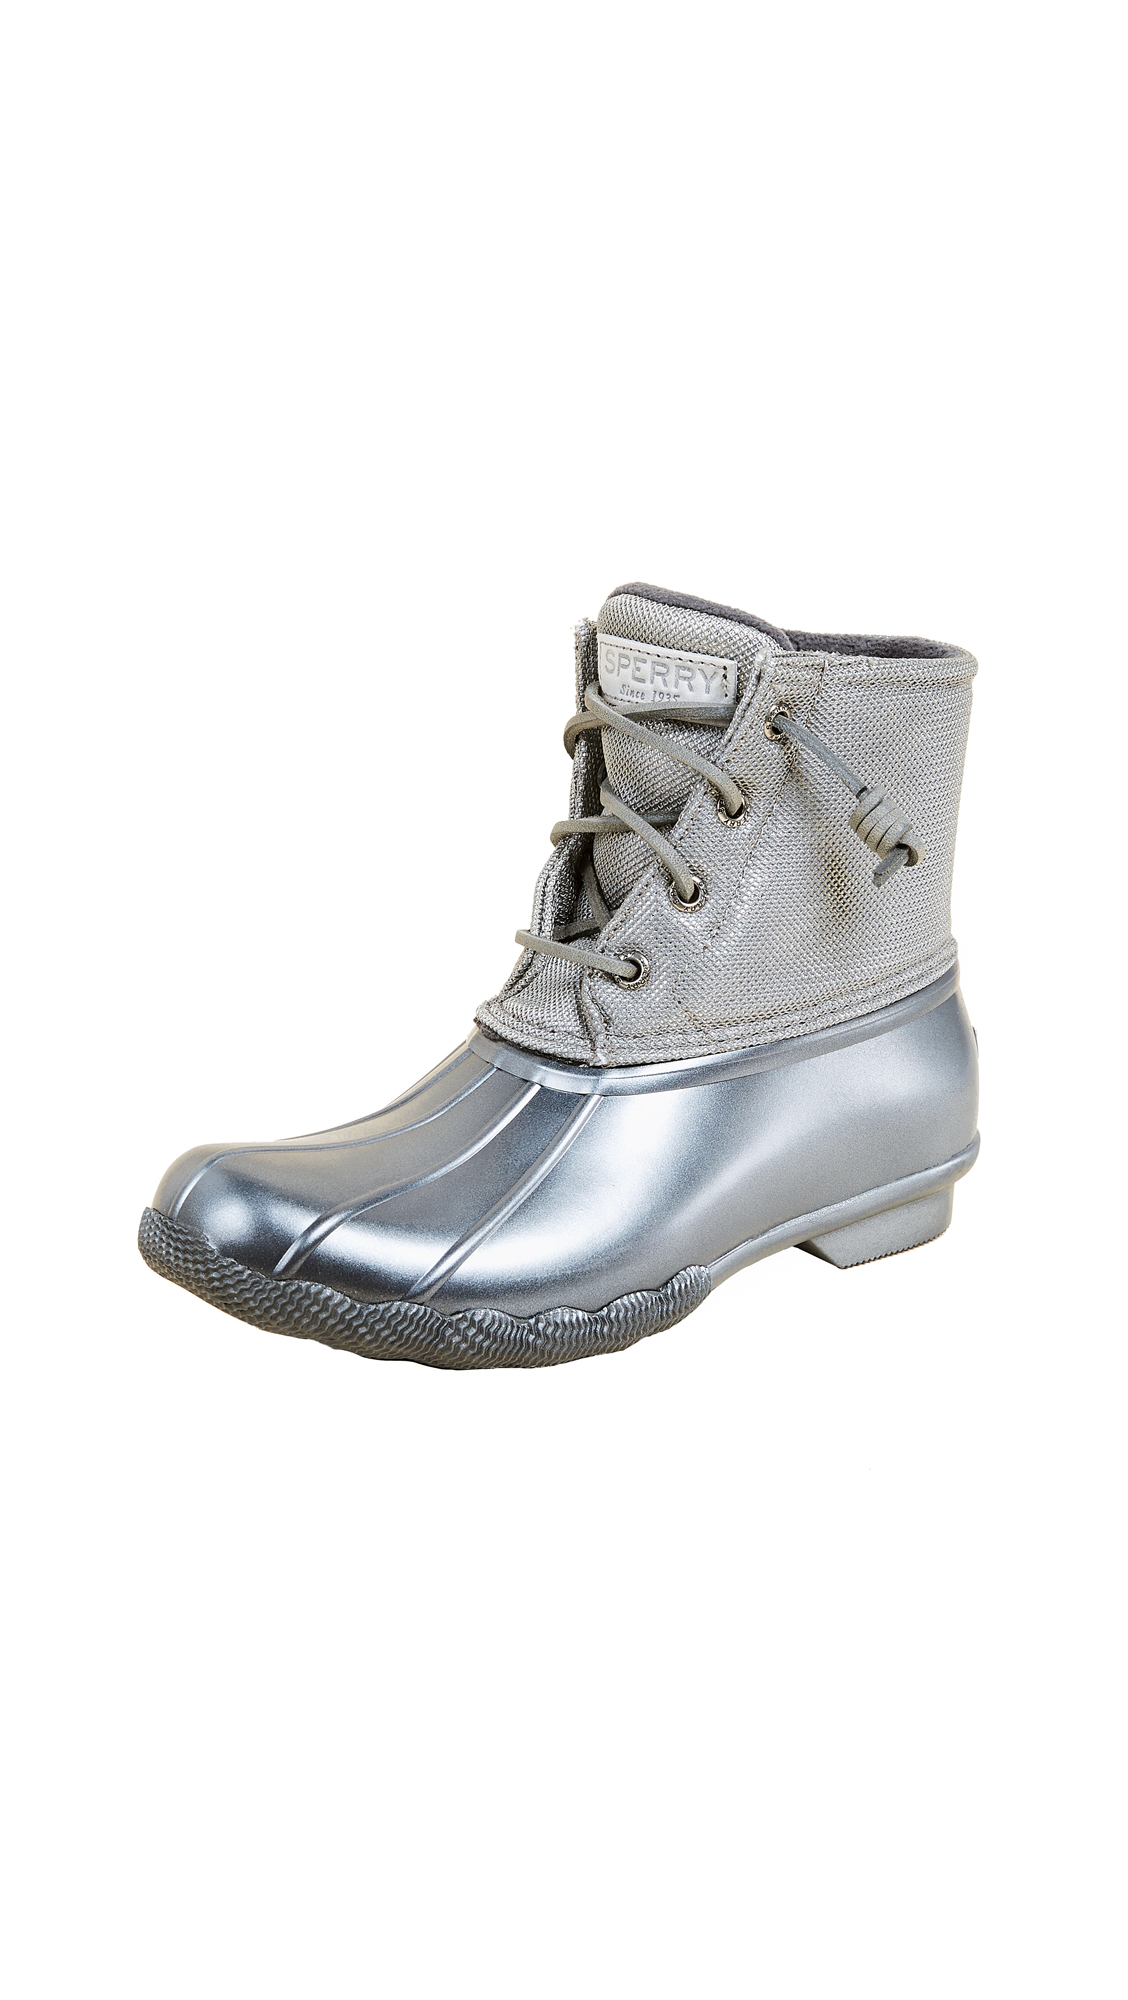 Sperry Saltwater Pearlized Rain Boots - Gunmetal